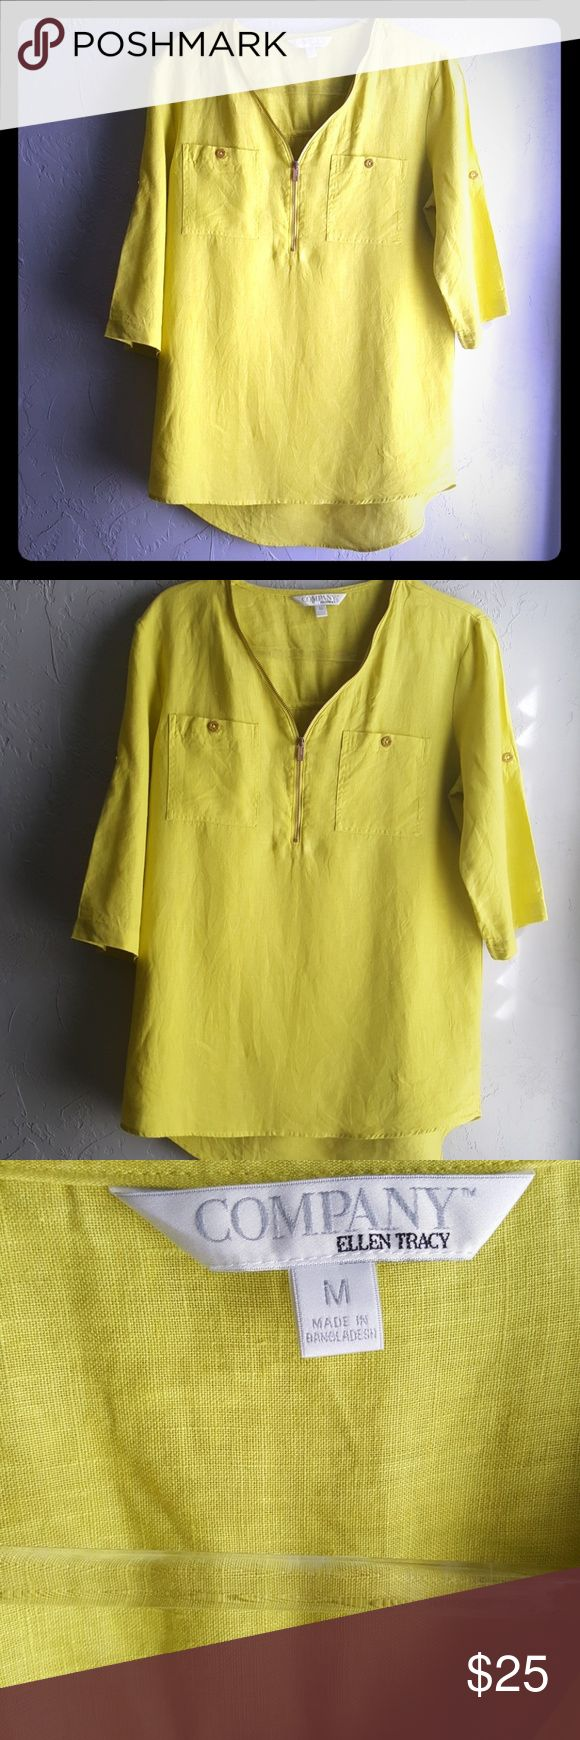 """Company Ellen Tracy Limeade linen blouse size M This limeade colored linen tunic is cool and comfortable for the warmer weather to come. Gold zipper and button accents, sleeves can be worn up or down, high low hem, 100 percent linen. length: front 27"""" length back:31"""" company ellen tracy Tops Tunics"""